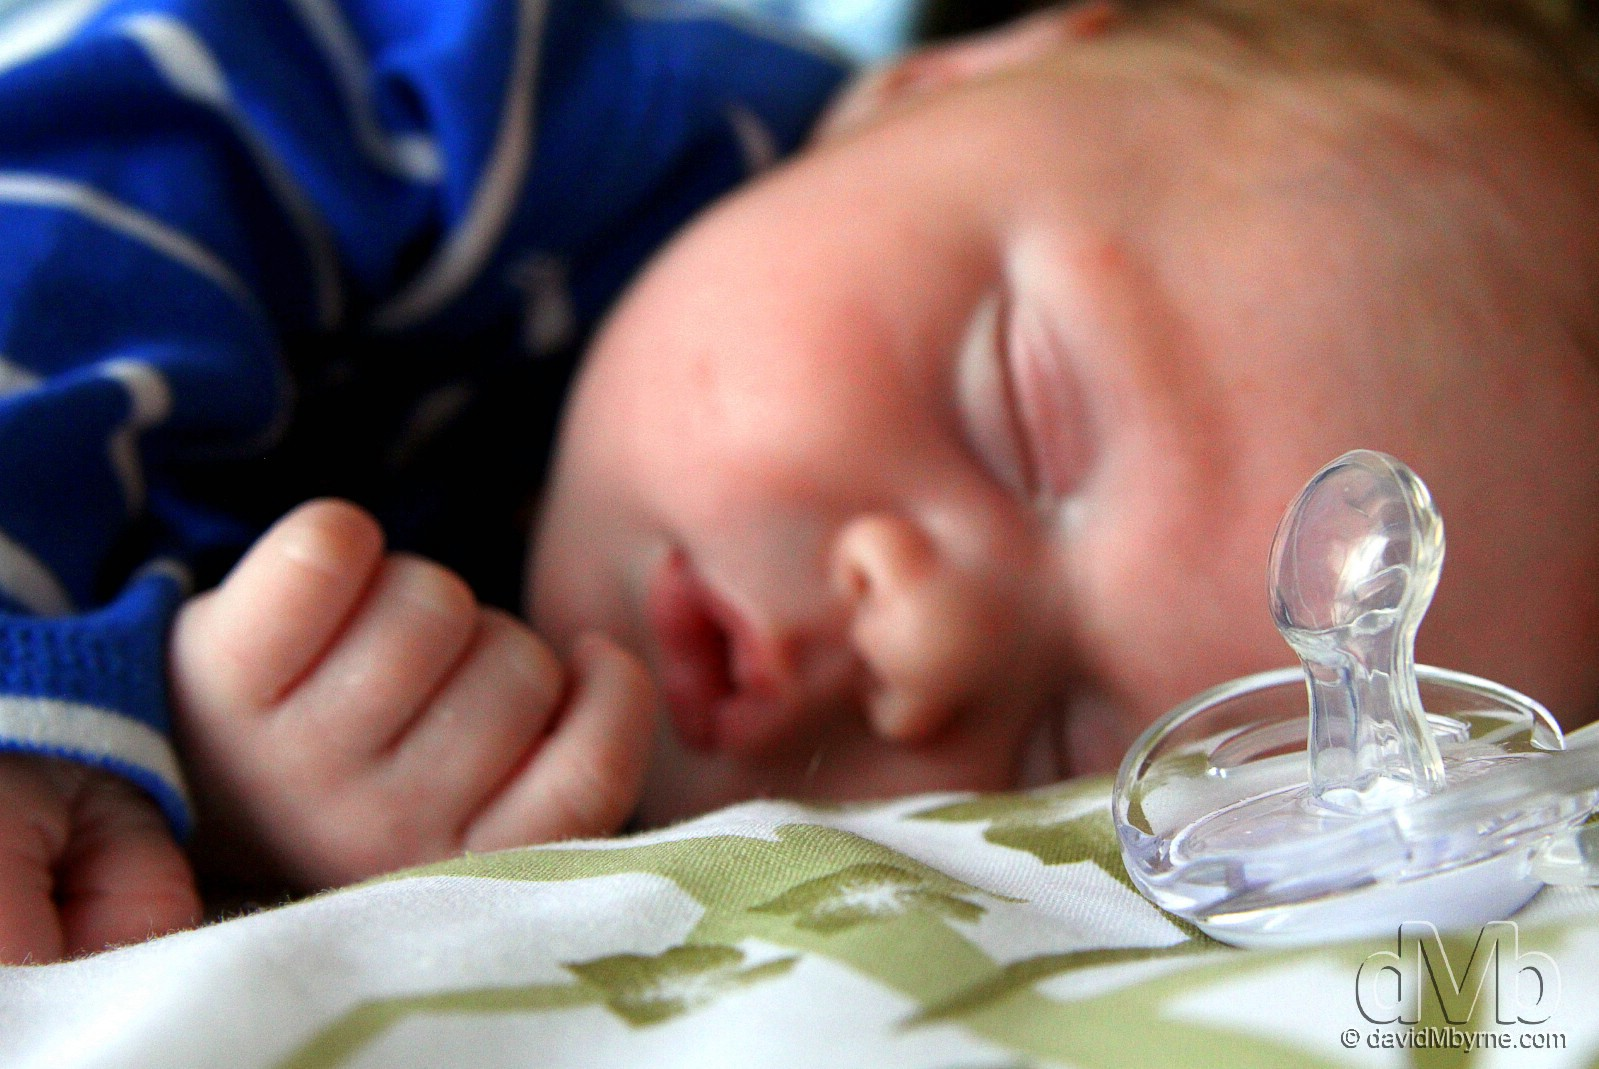 Baby Ryan. Sleeping. Wicklow, Ireland. November 26th, 2011 (EOS 60D || Tamron 28-75mm || 40mm, 1/60sec, f/5.6, iso1250)